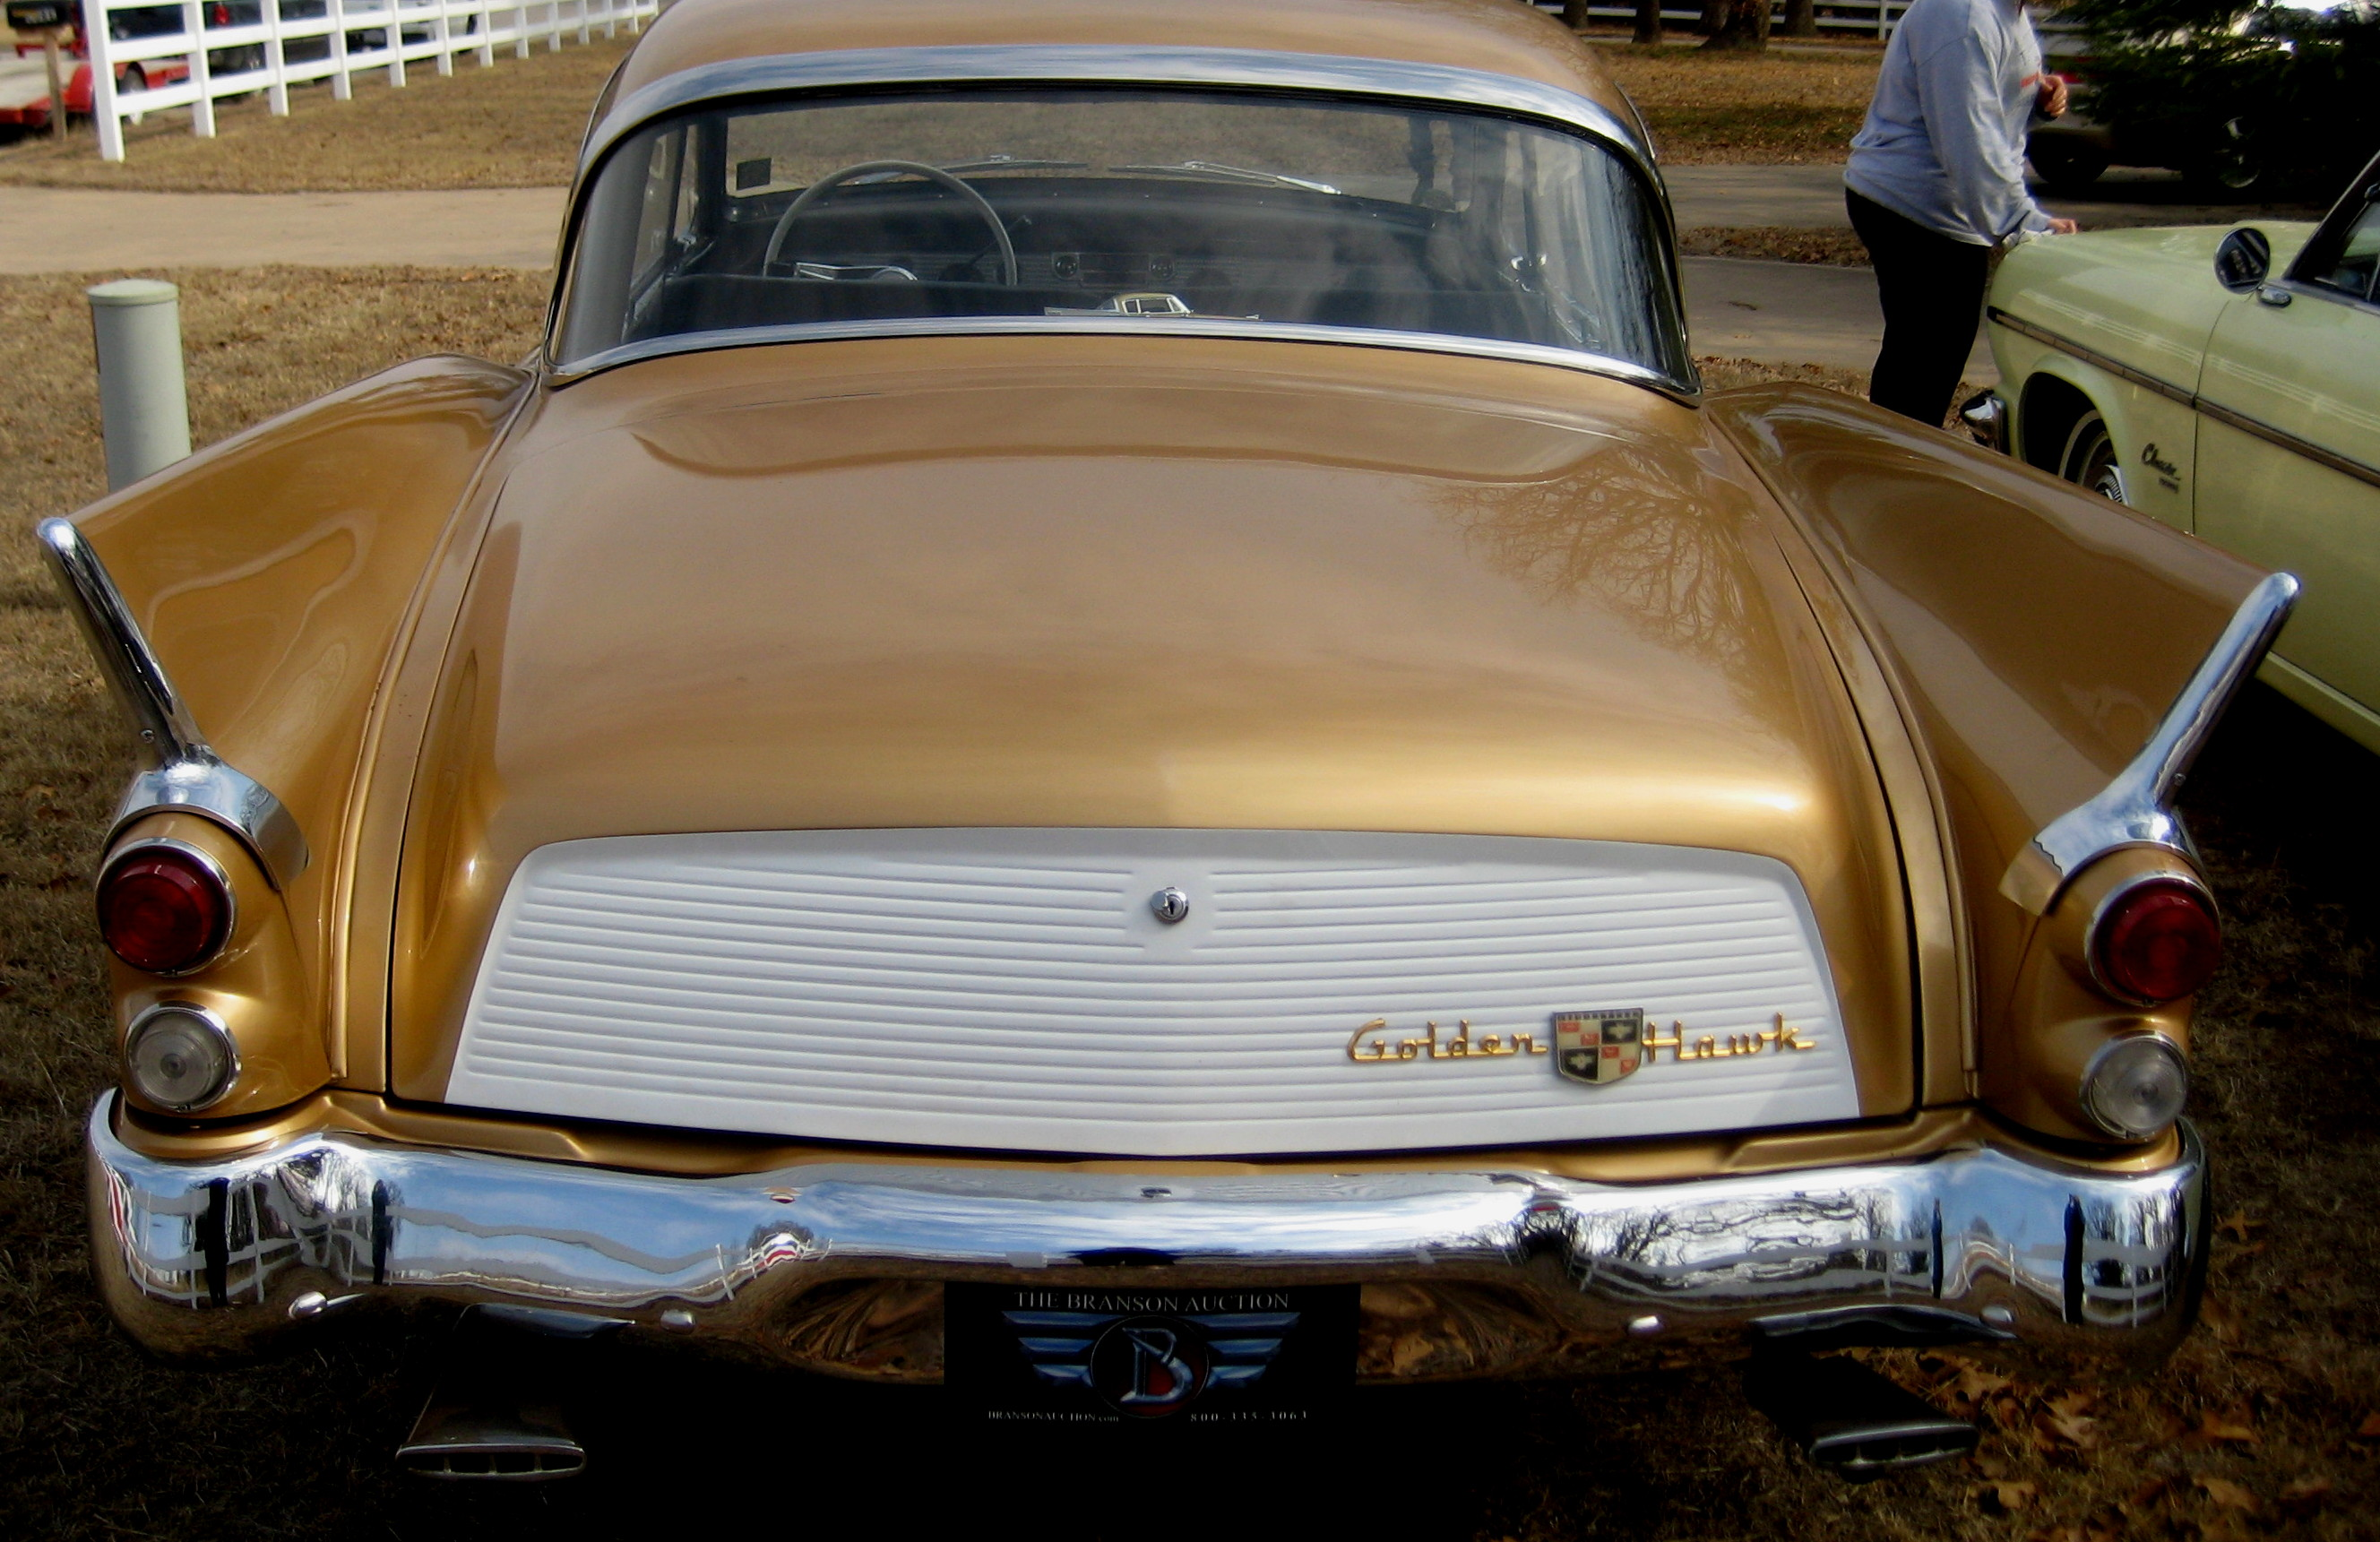 For Sale 1957 STUDEBAKER GOLDEN HAWK Supercharged -- BEAUTIFUL ...